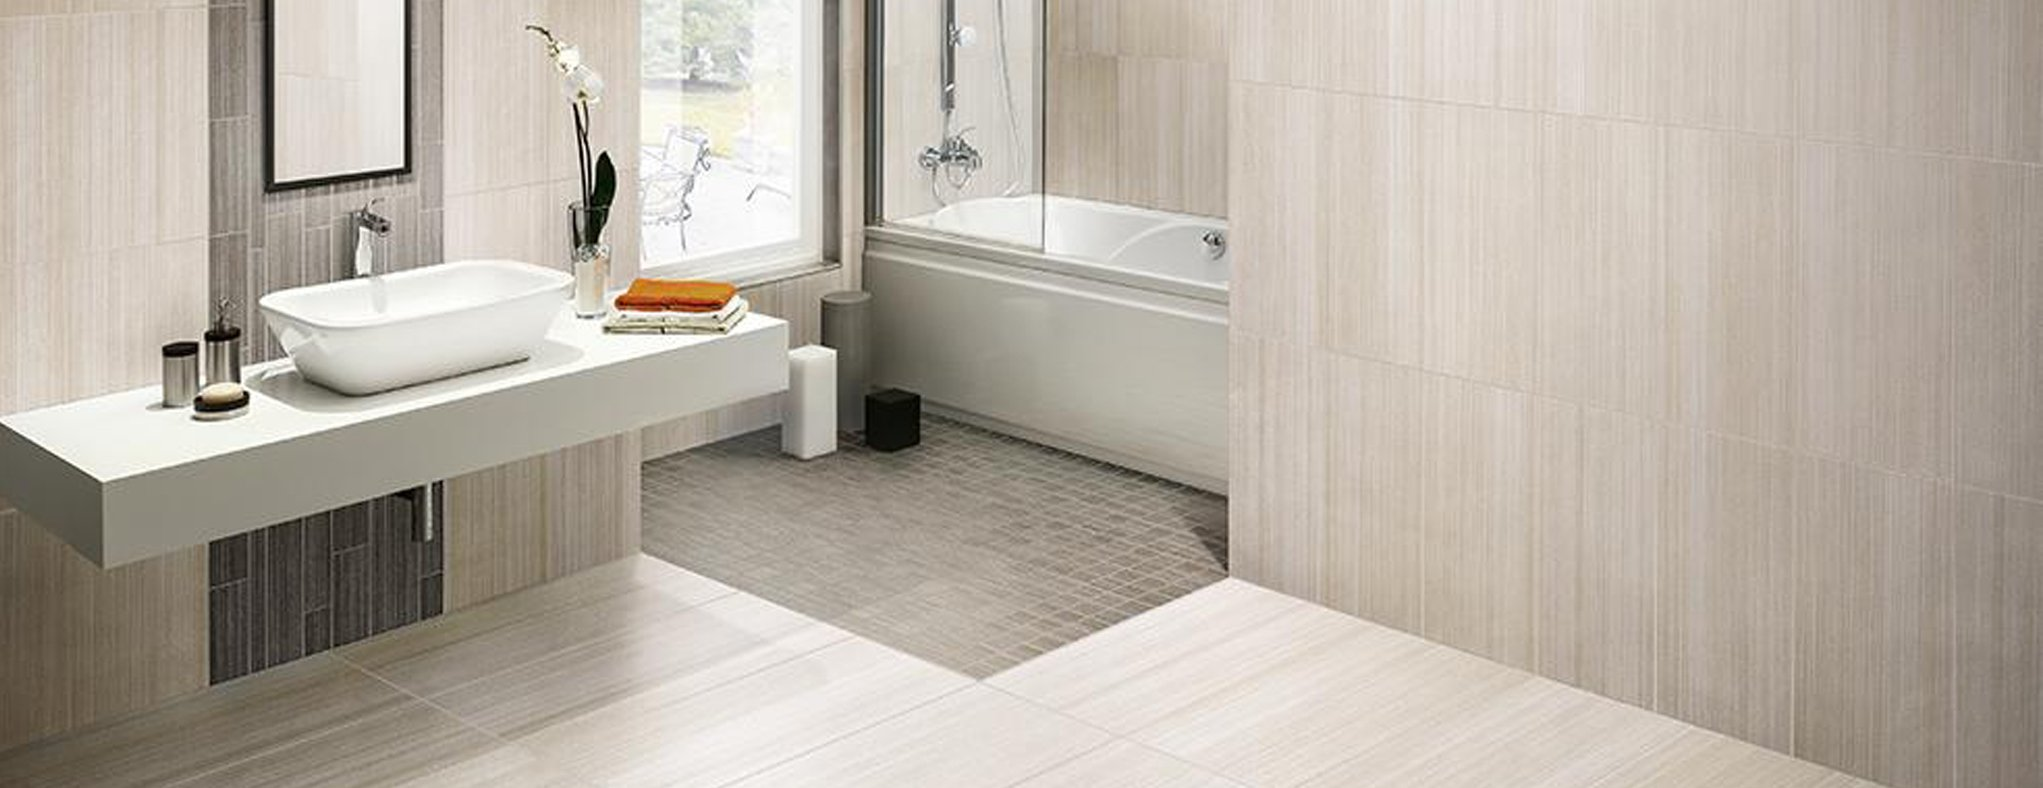 Tile Trends Ceramic And Porcelain Tile Company - Ceramic tile companies near me